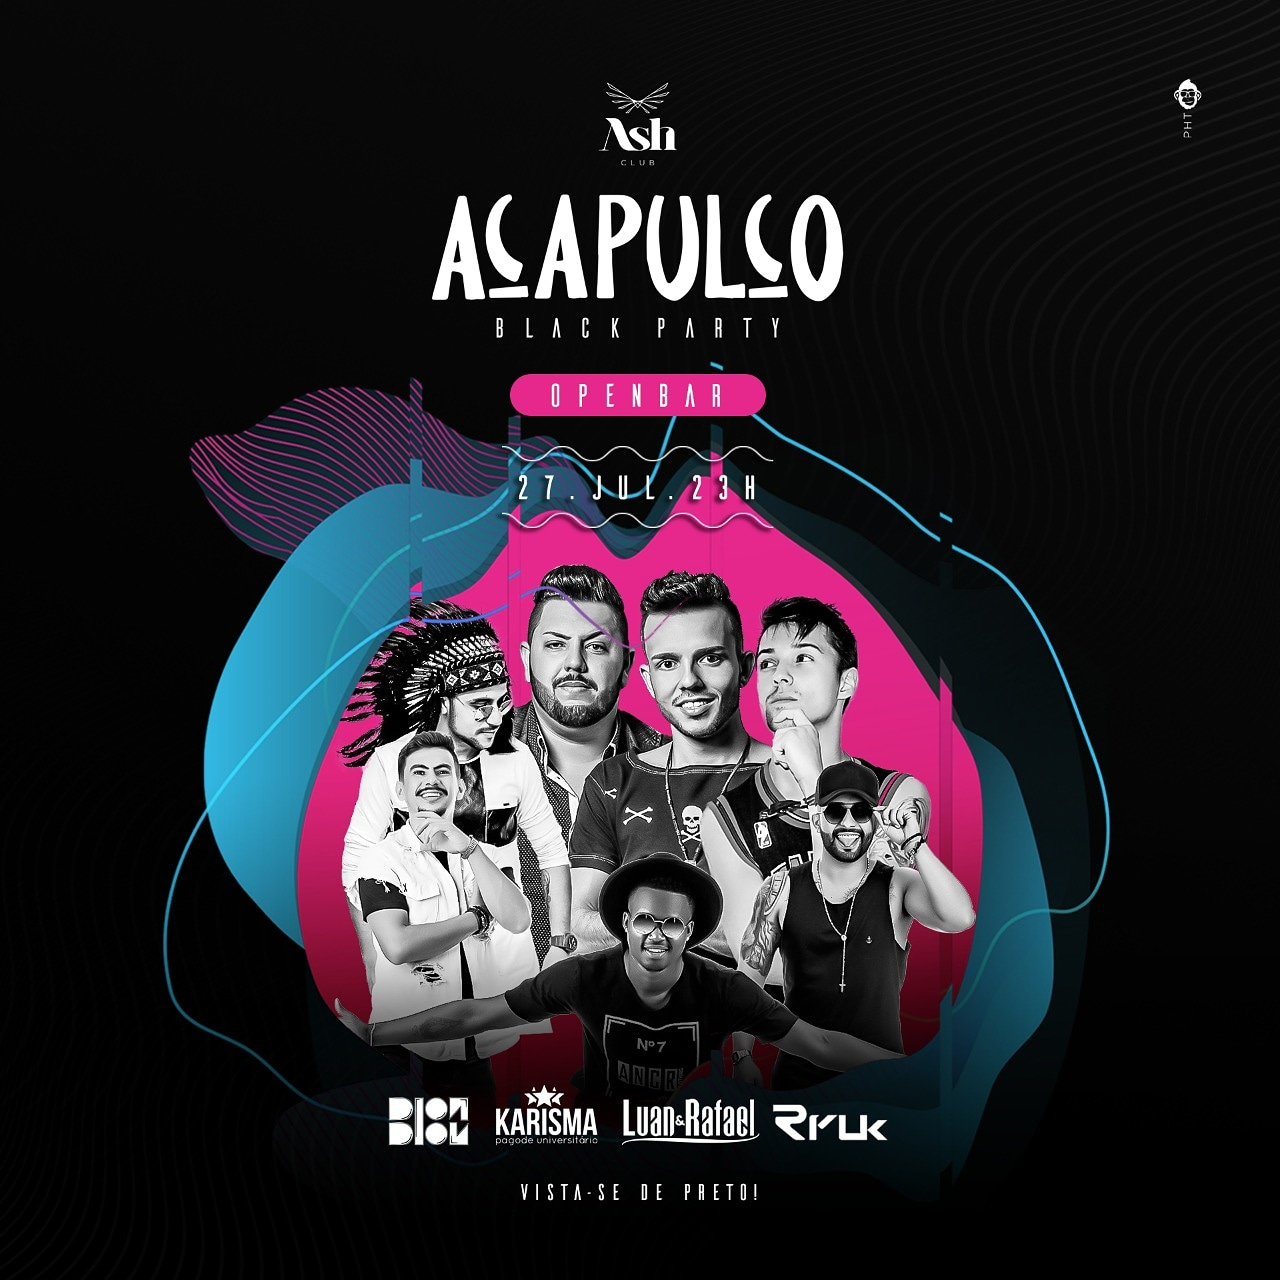 Ash Club - Acapulco Black Party